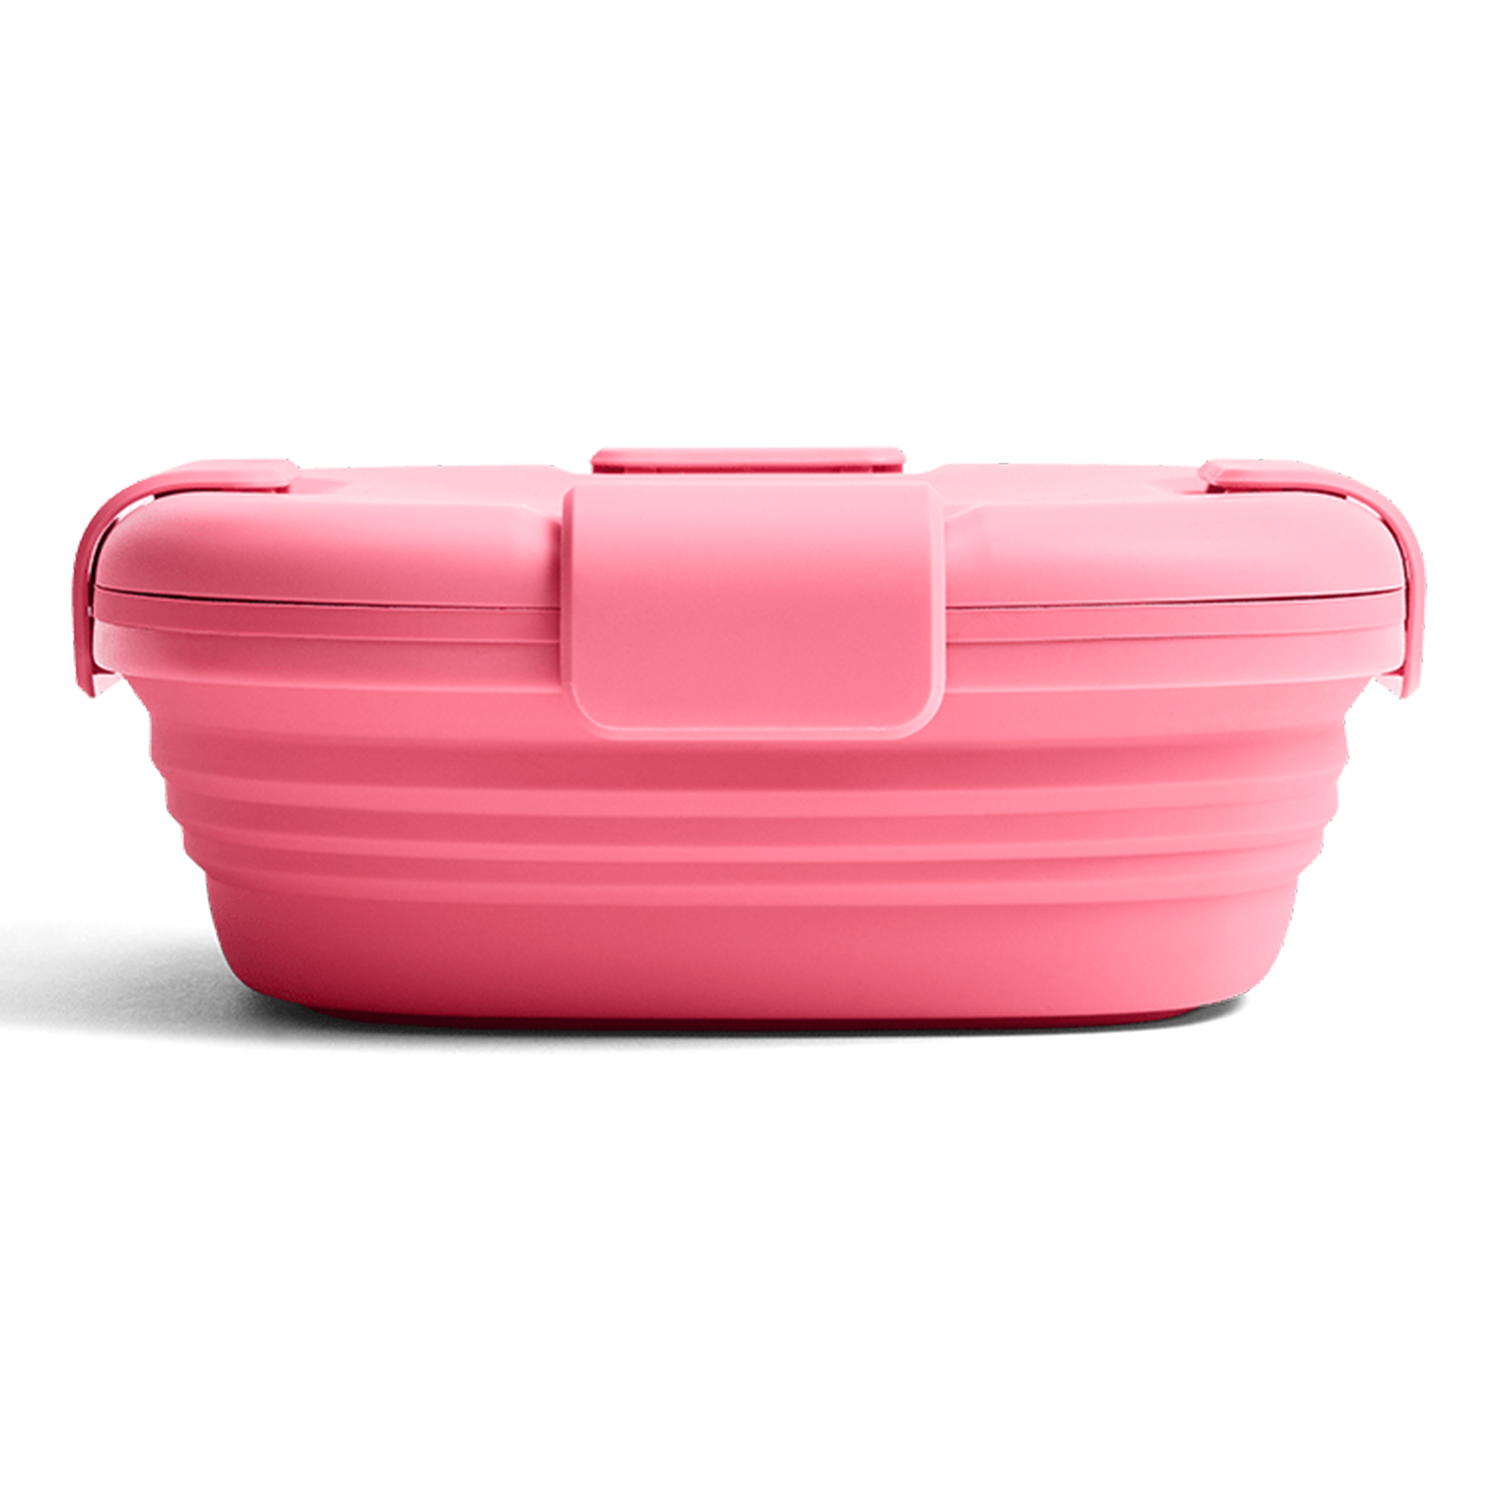 Stojo COLLAPSIBLE AND PORTABLE CONTAINERS